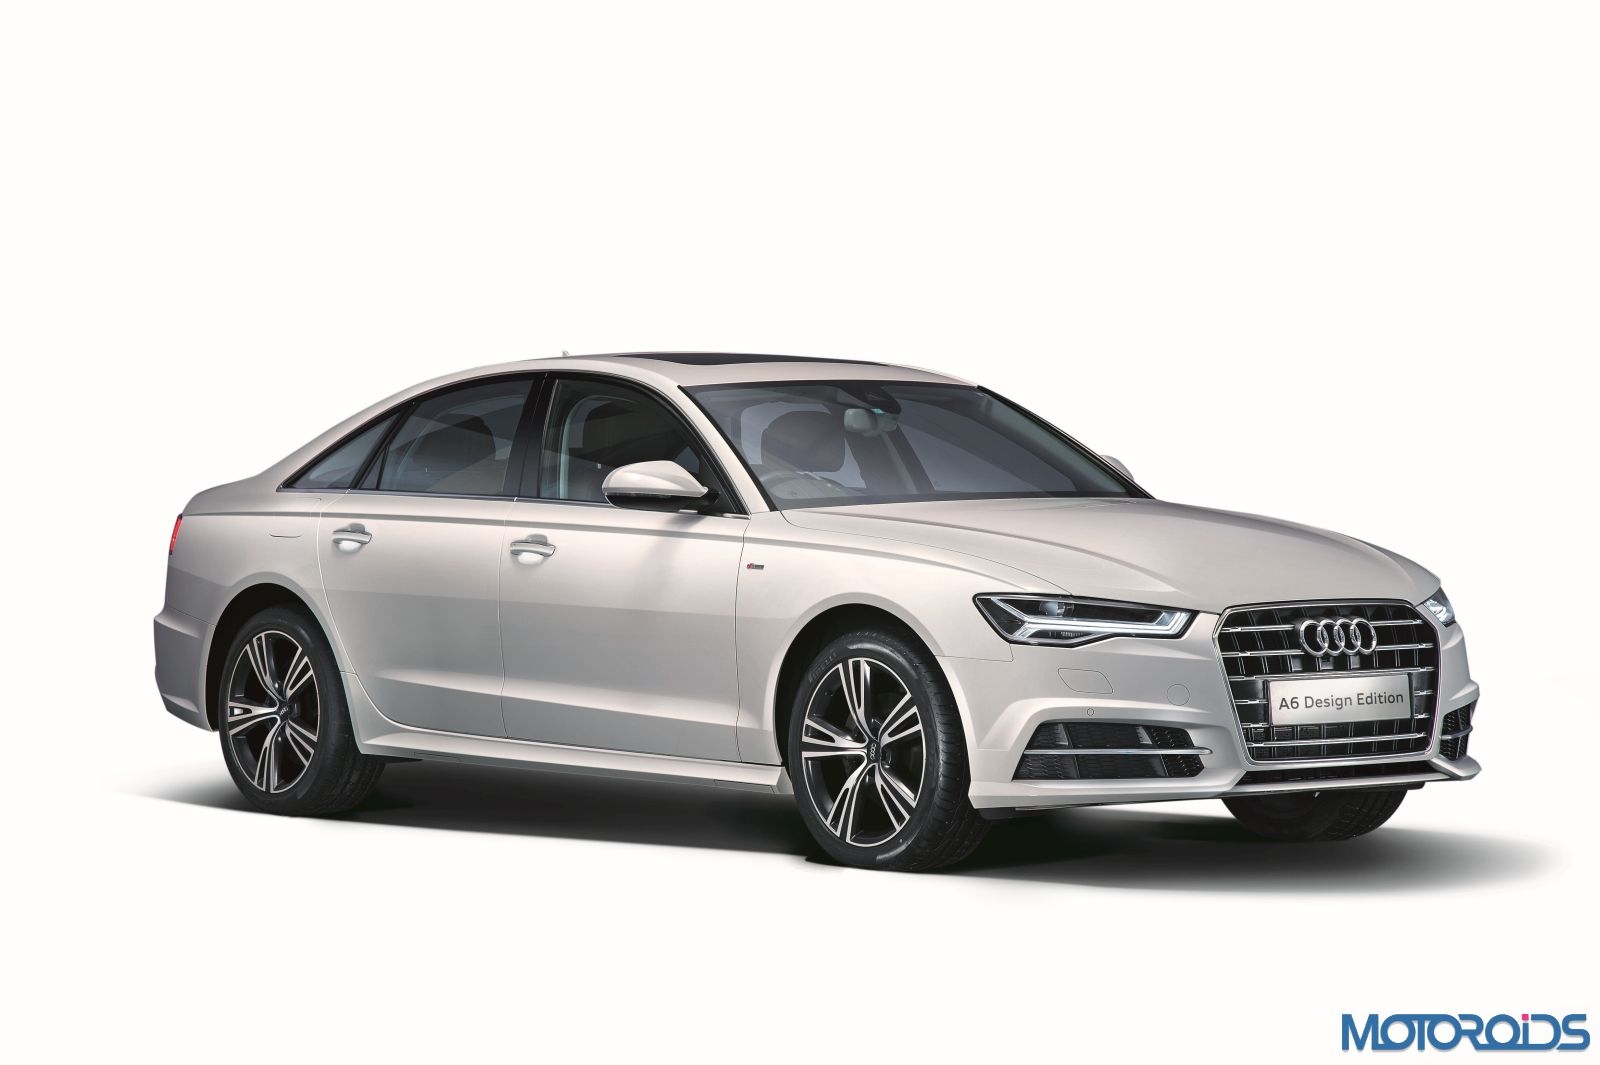 Audi Q7 and A6 Design Edition introduced in India | Motoroids